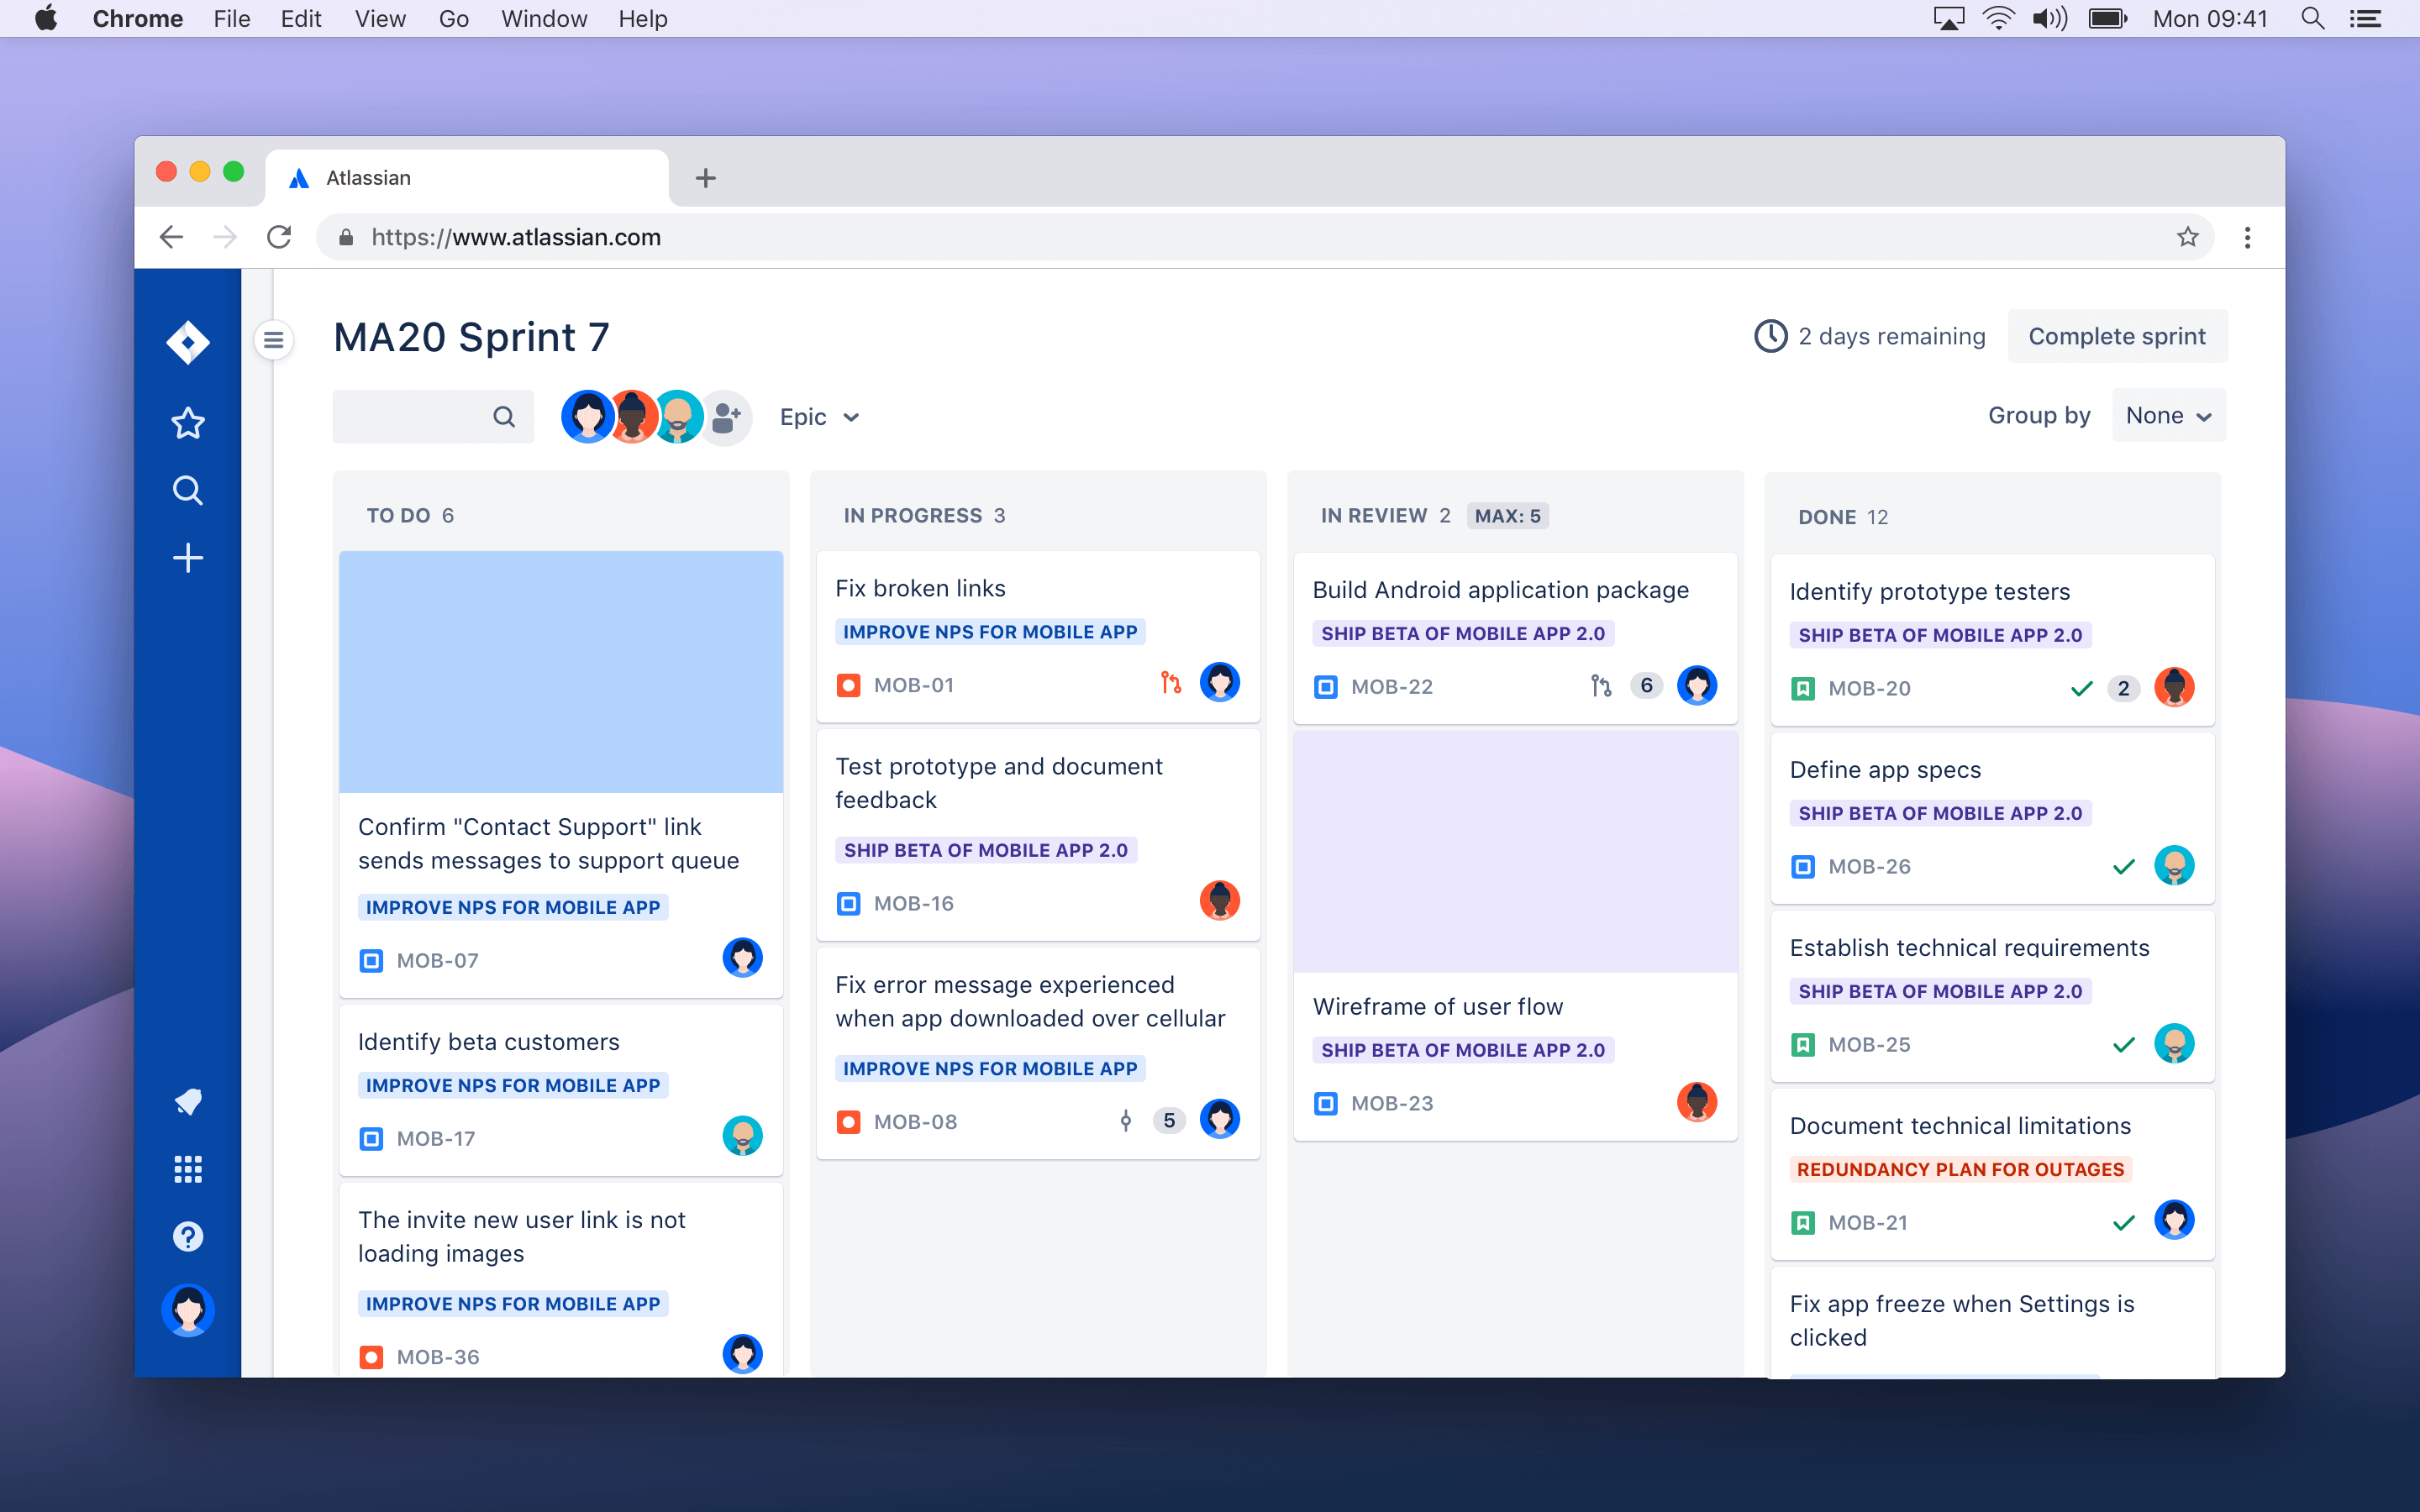 Scrum and Kanban board screenshot